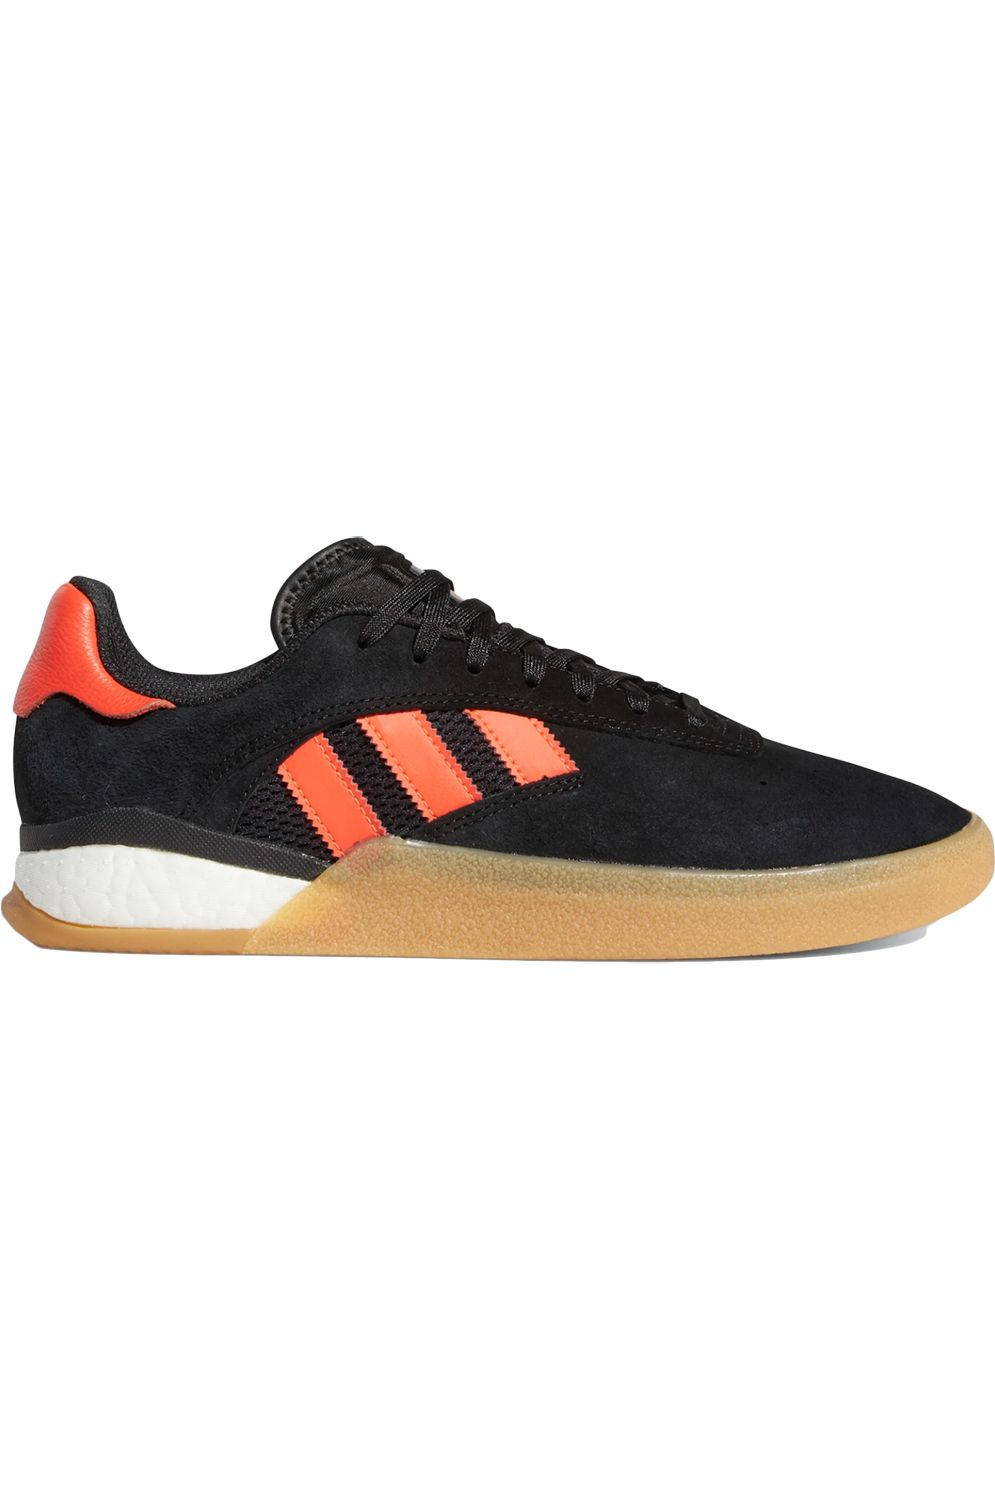 Adidas Shoes 3ST.004 Core Black/Solar Red/Ftwr White